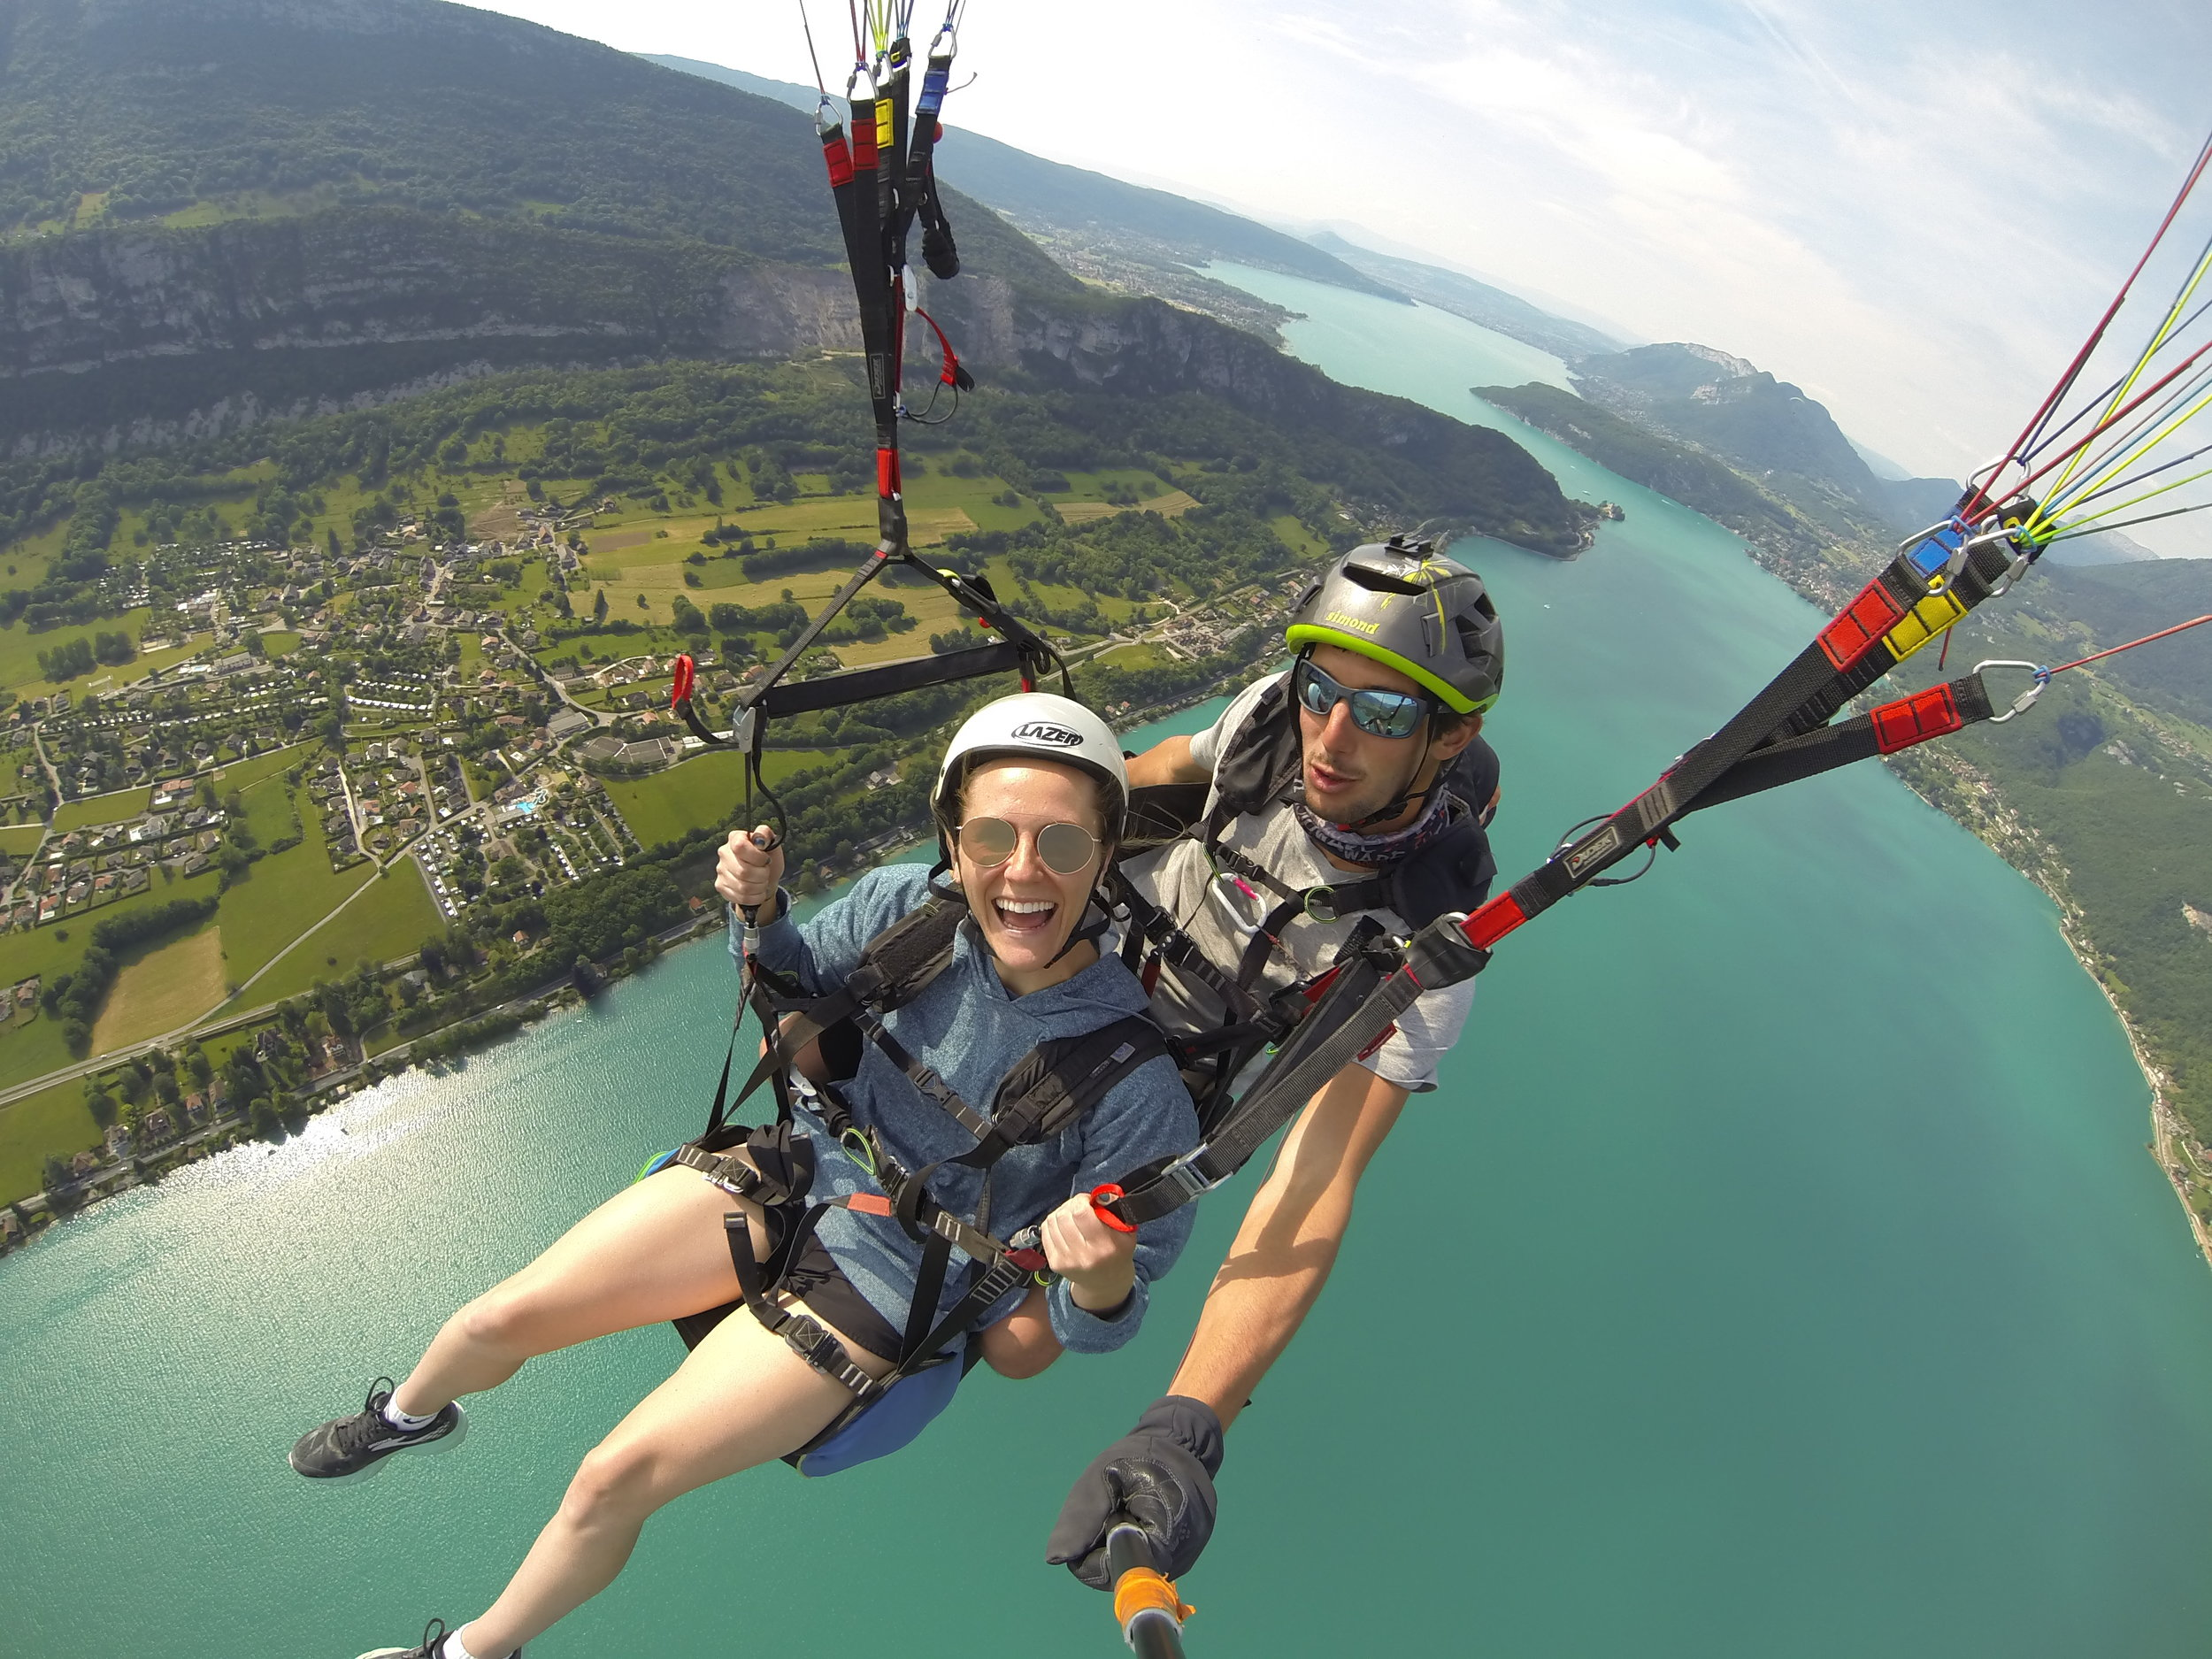 Paragliding over Lac d'Annecy, France.